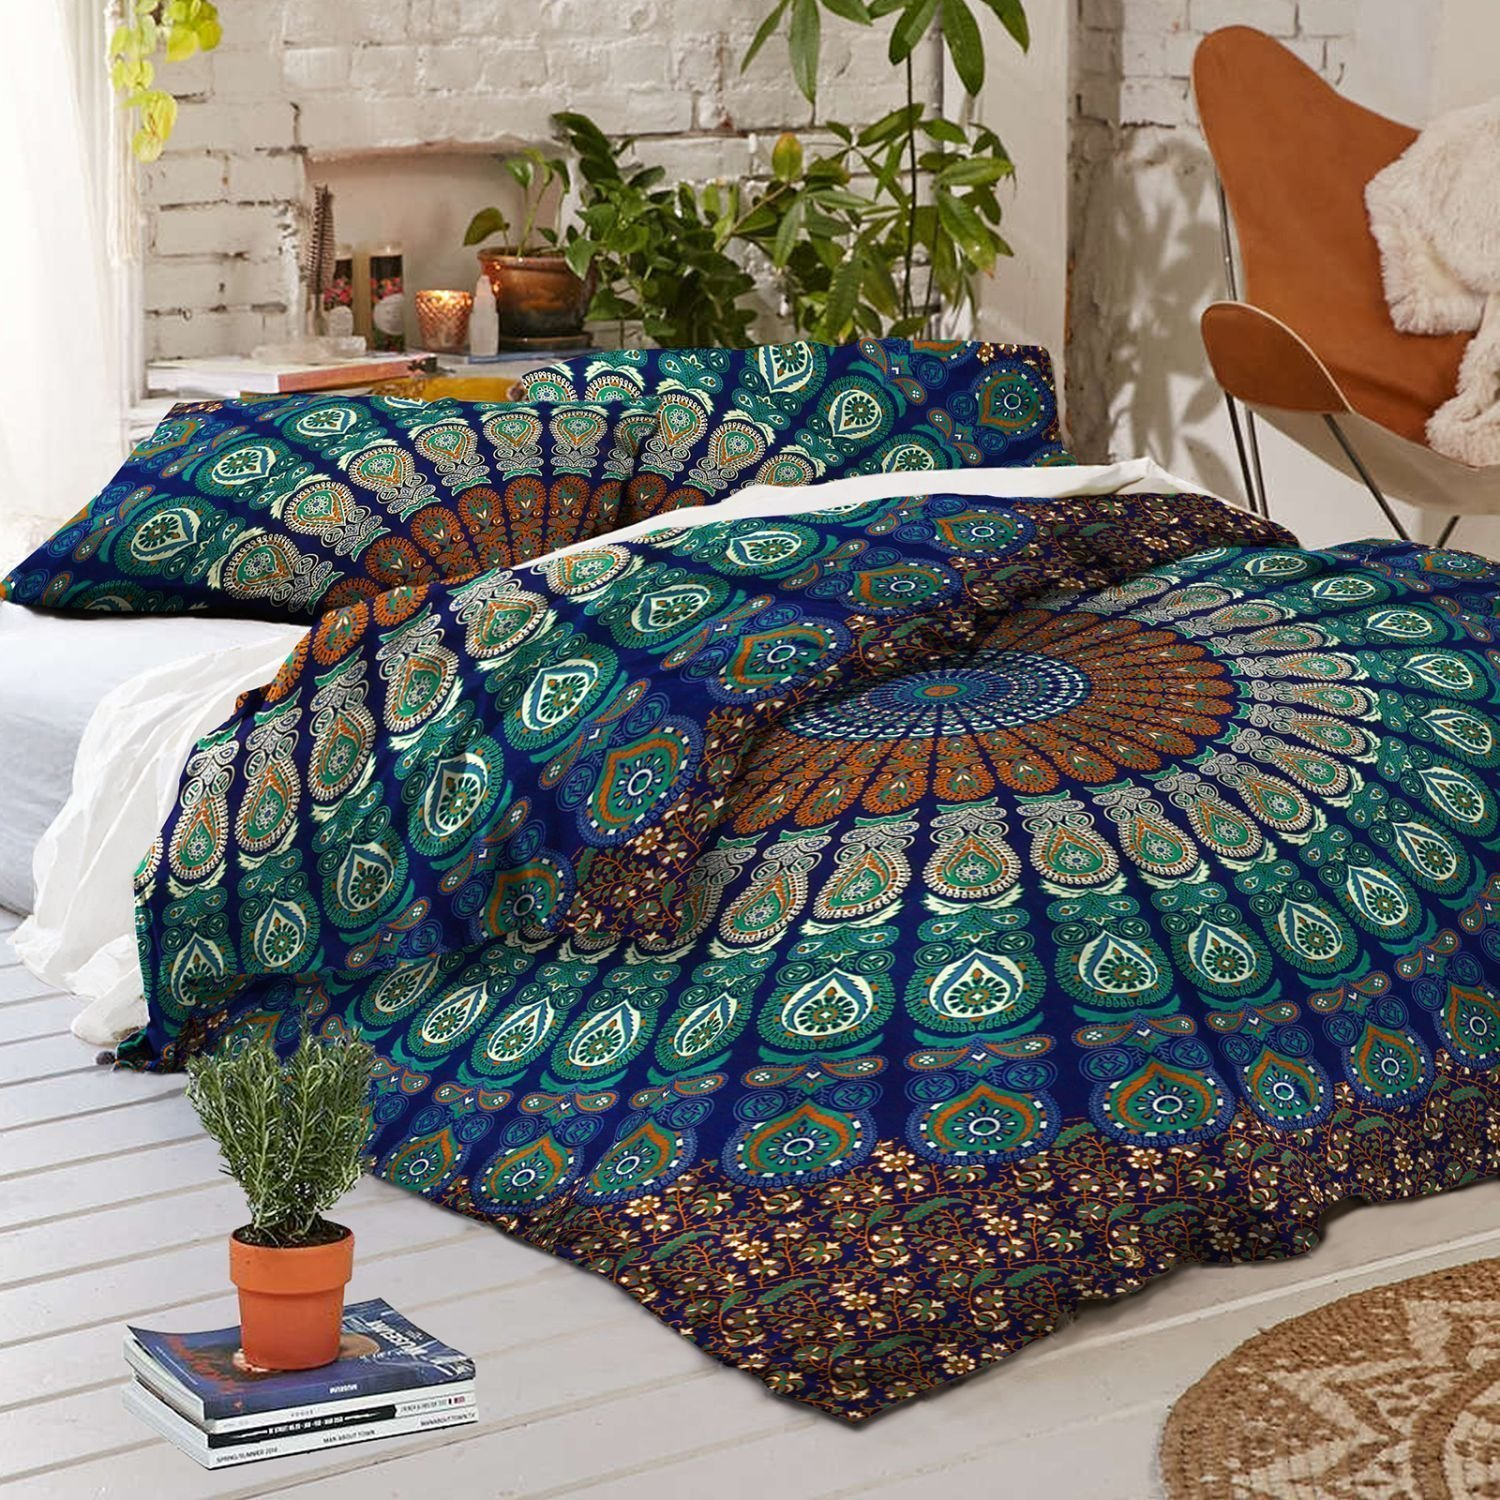 Sophia Art Exclusive Peacock Mandala Duvet Cover with Pillowcases Mandala Doona Cover, Donna Cover Indian Dovet Set with Magazine Holder Letter Holder Wall Hanging (Blue, Queen)